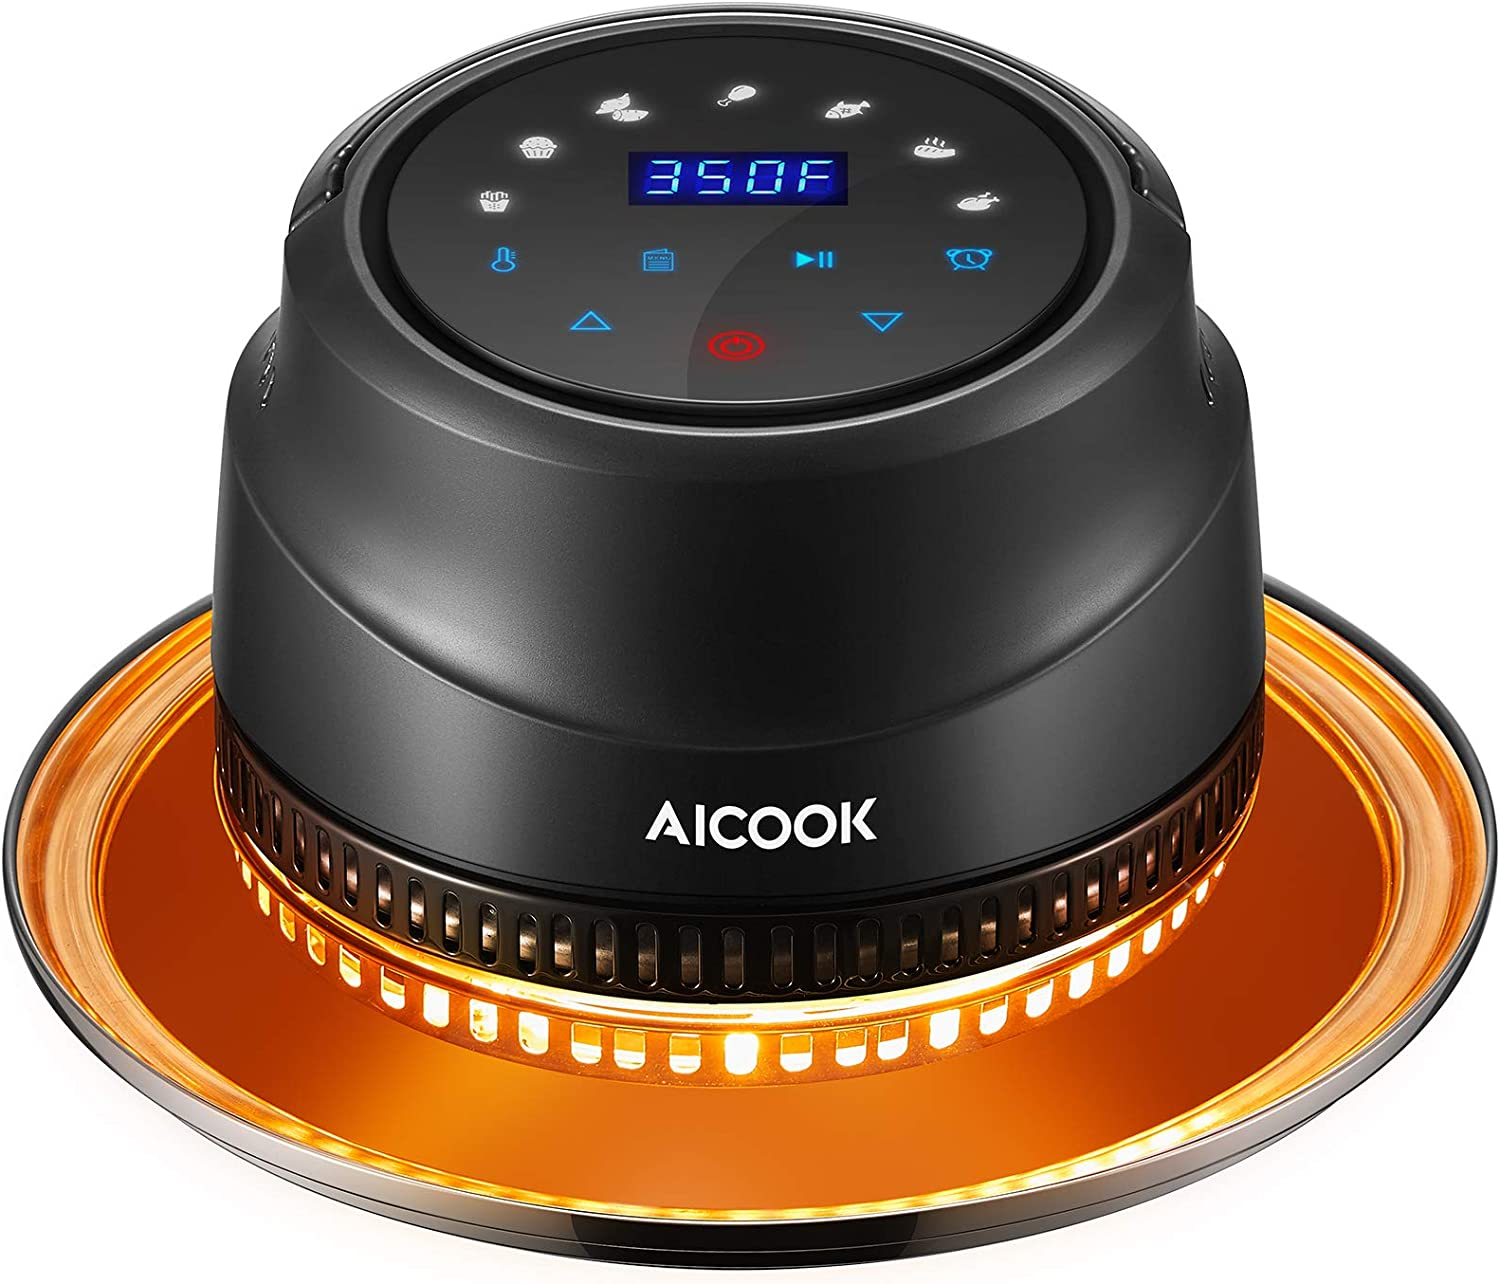 AICOOK Air Fryer Lid for Instant Pot 6&8 Qt, 7 in 1 Air Fyer Lid with LED Touchscreen, Turn Your Pressure Cooker Into Air Fryer in Seconds, Air Fryer Accessories and Recipe Cookbook Included